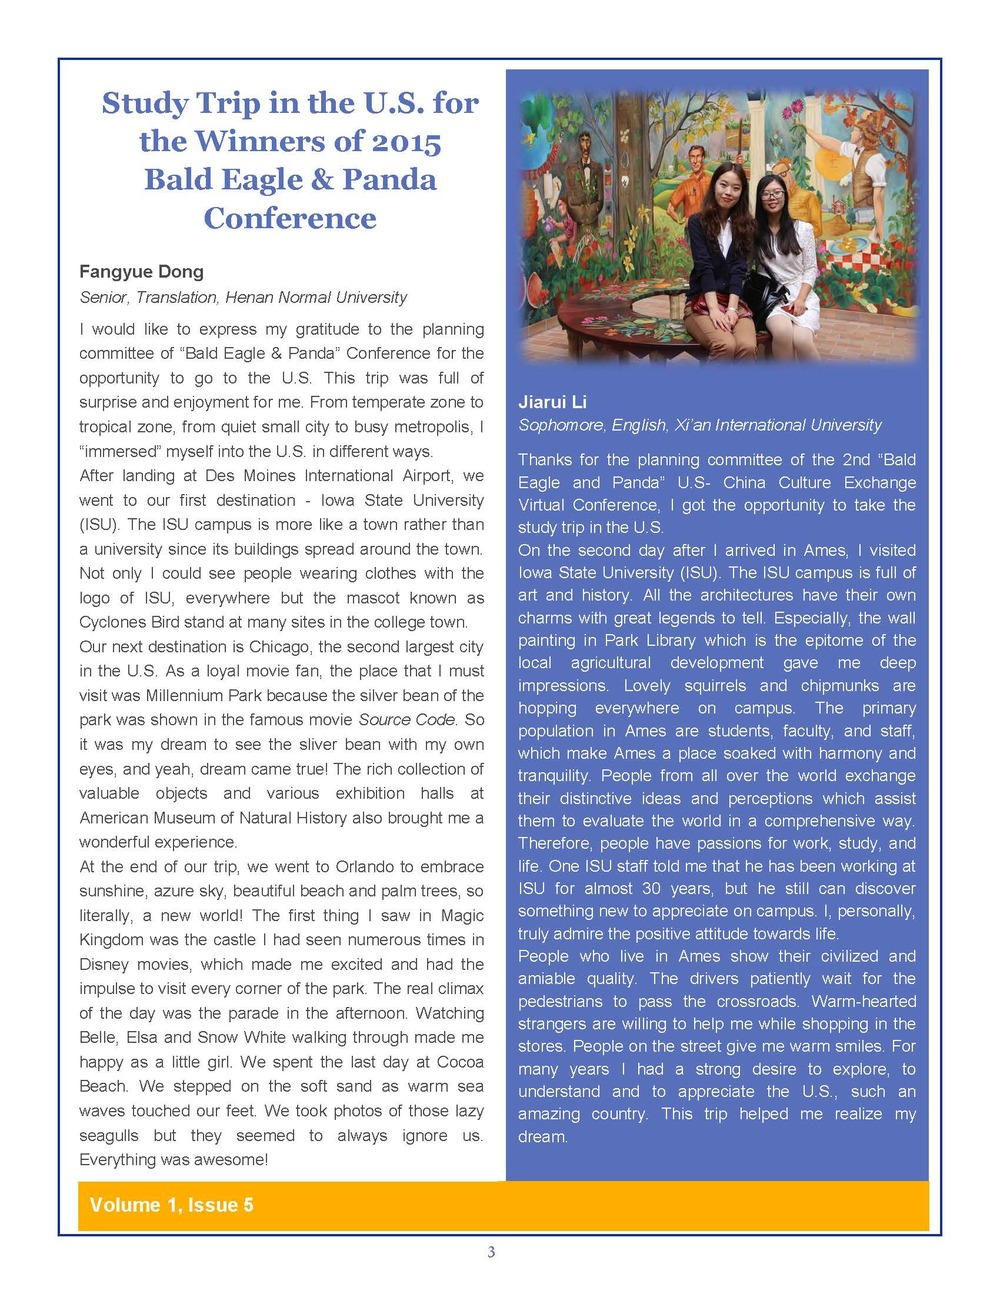 Bald Eagle & Panda Newsletter Issue 5_Page_3.jpg